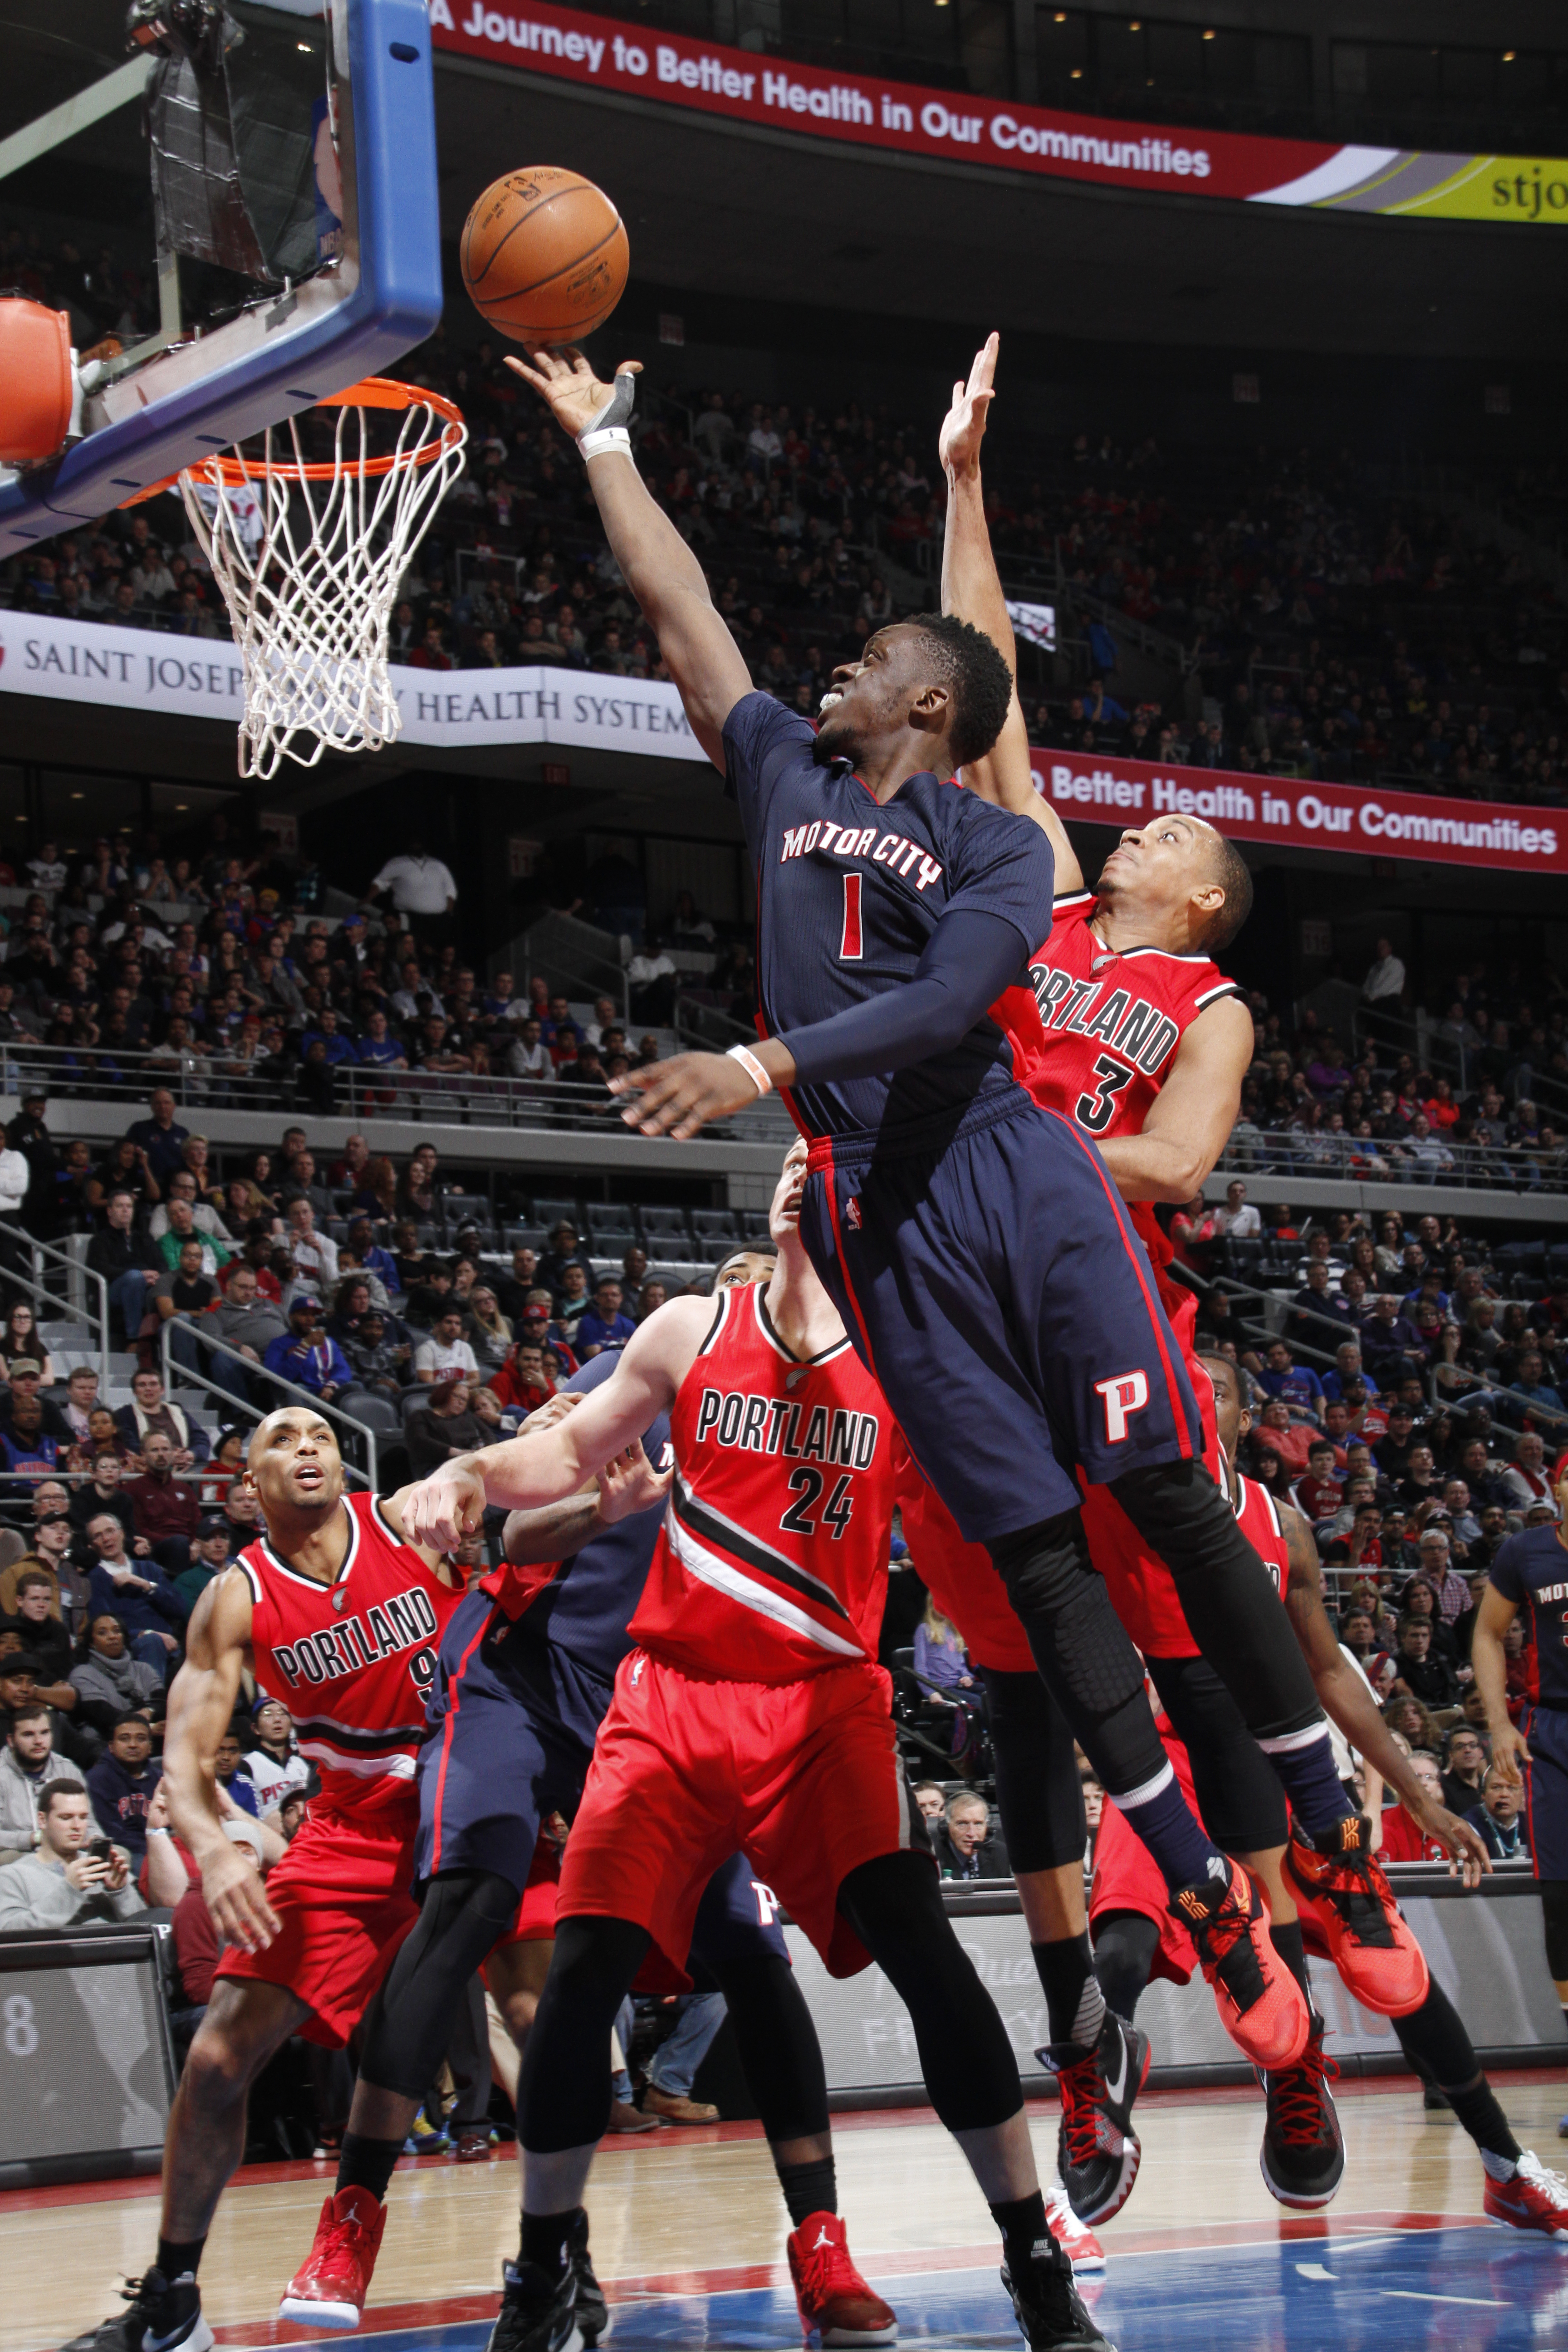 AUBURN HILLS, MI - MARCH 6:  Reggie Jackson #1 of the Detroit Pistons shoots the ball against the Portland Trail Blazers on March 6, 2016 at The Palace of Auburn Hills in Auburn Hills, Michigan. (Photo by B. Sevald/Einstein/NBAE via Getty Images)